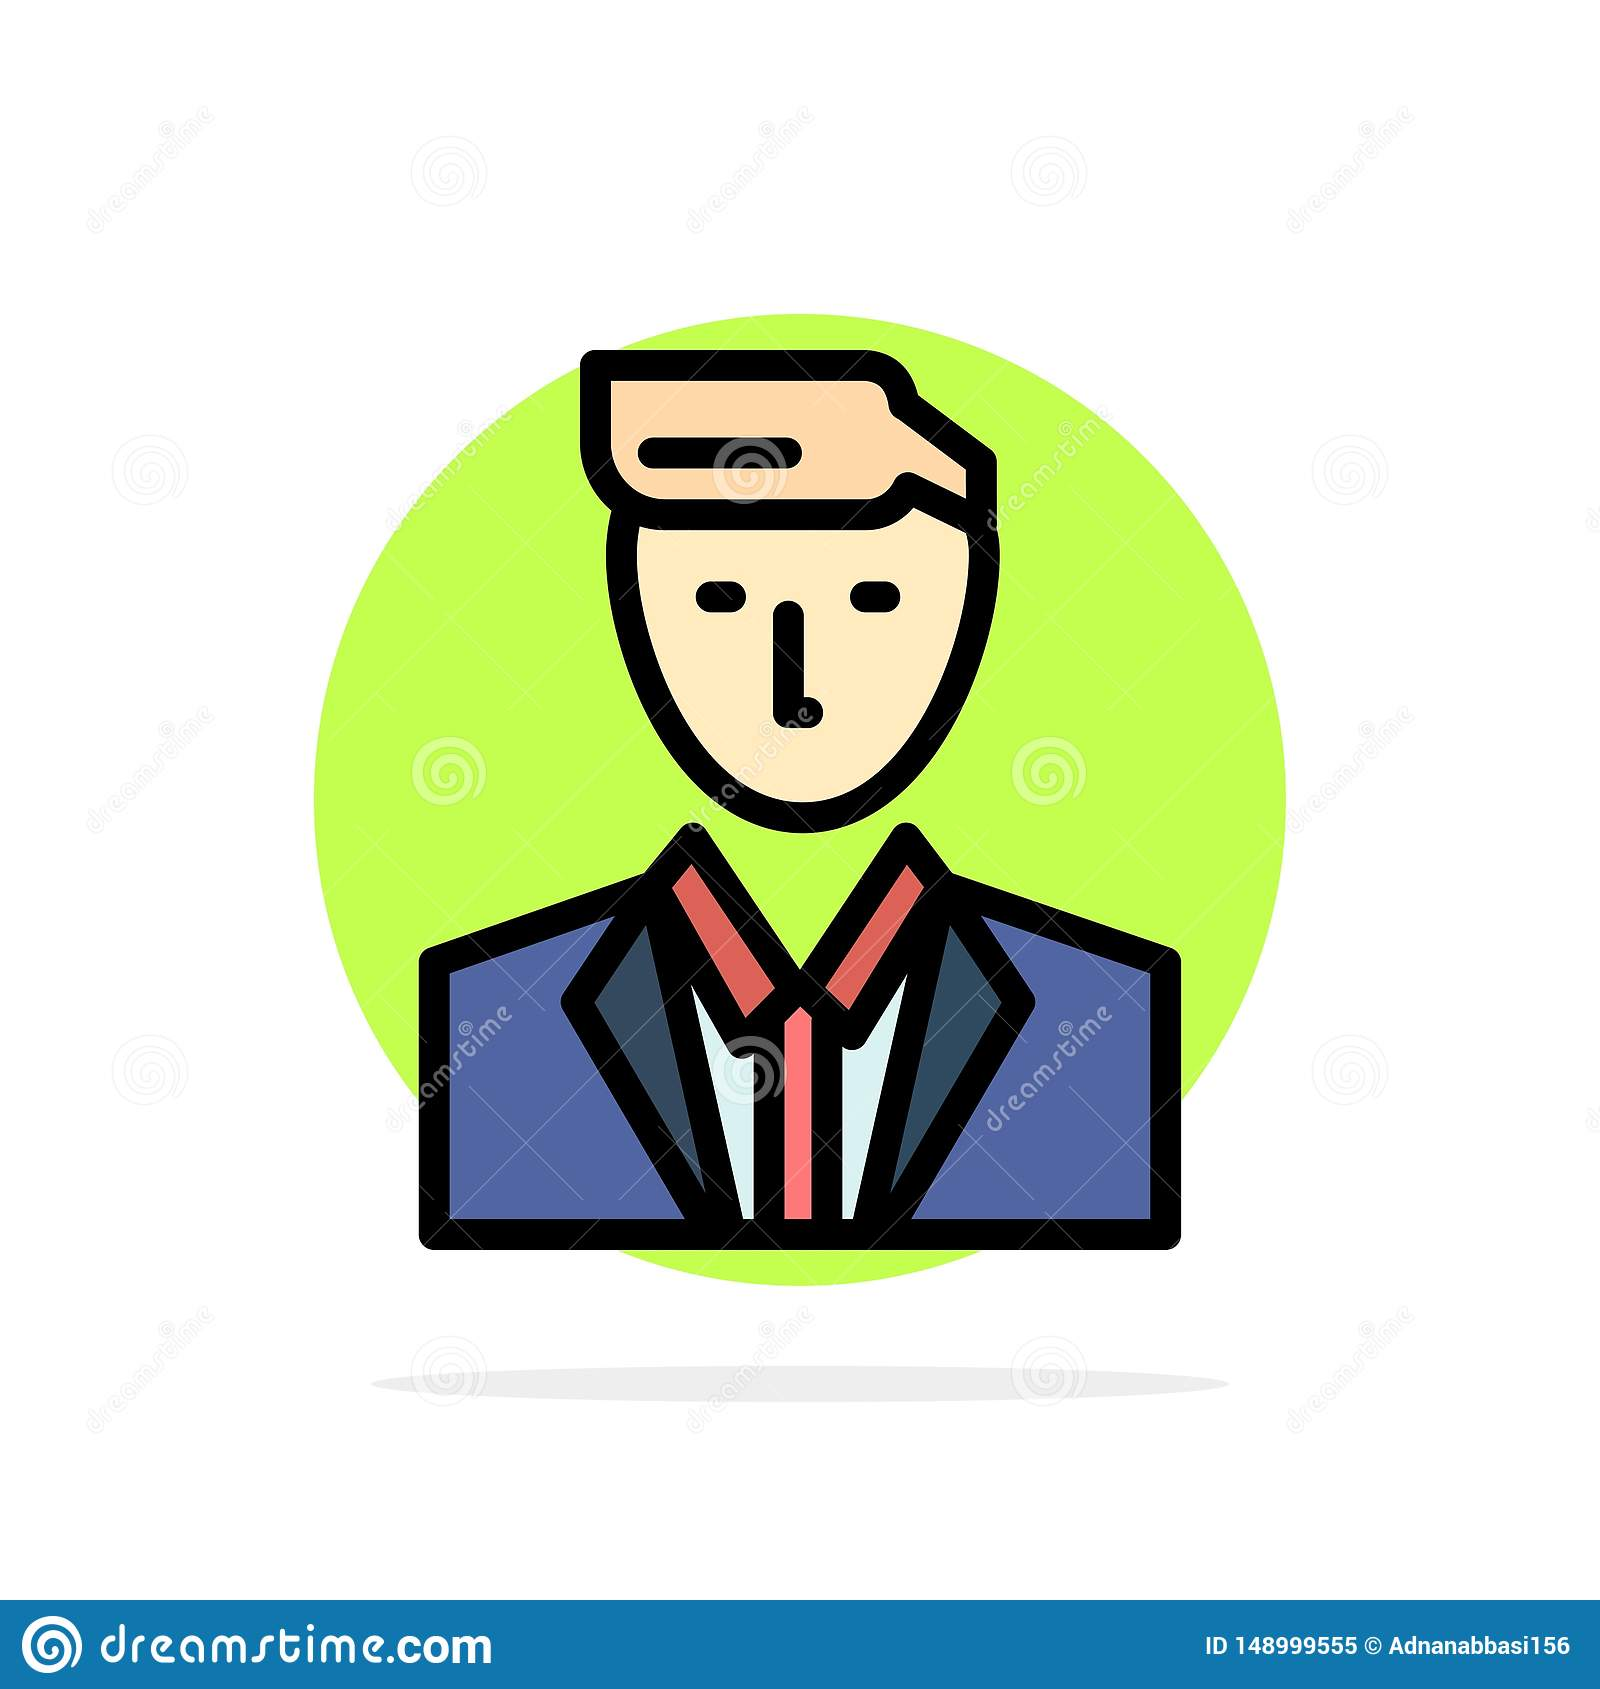 Boss, Ceo, Head, Leader, Mr Abstract Circle Background Flat color Icon